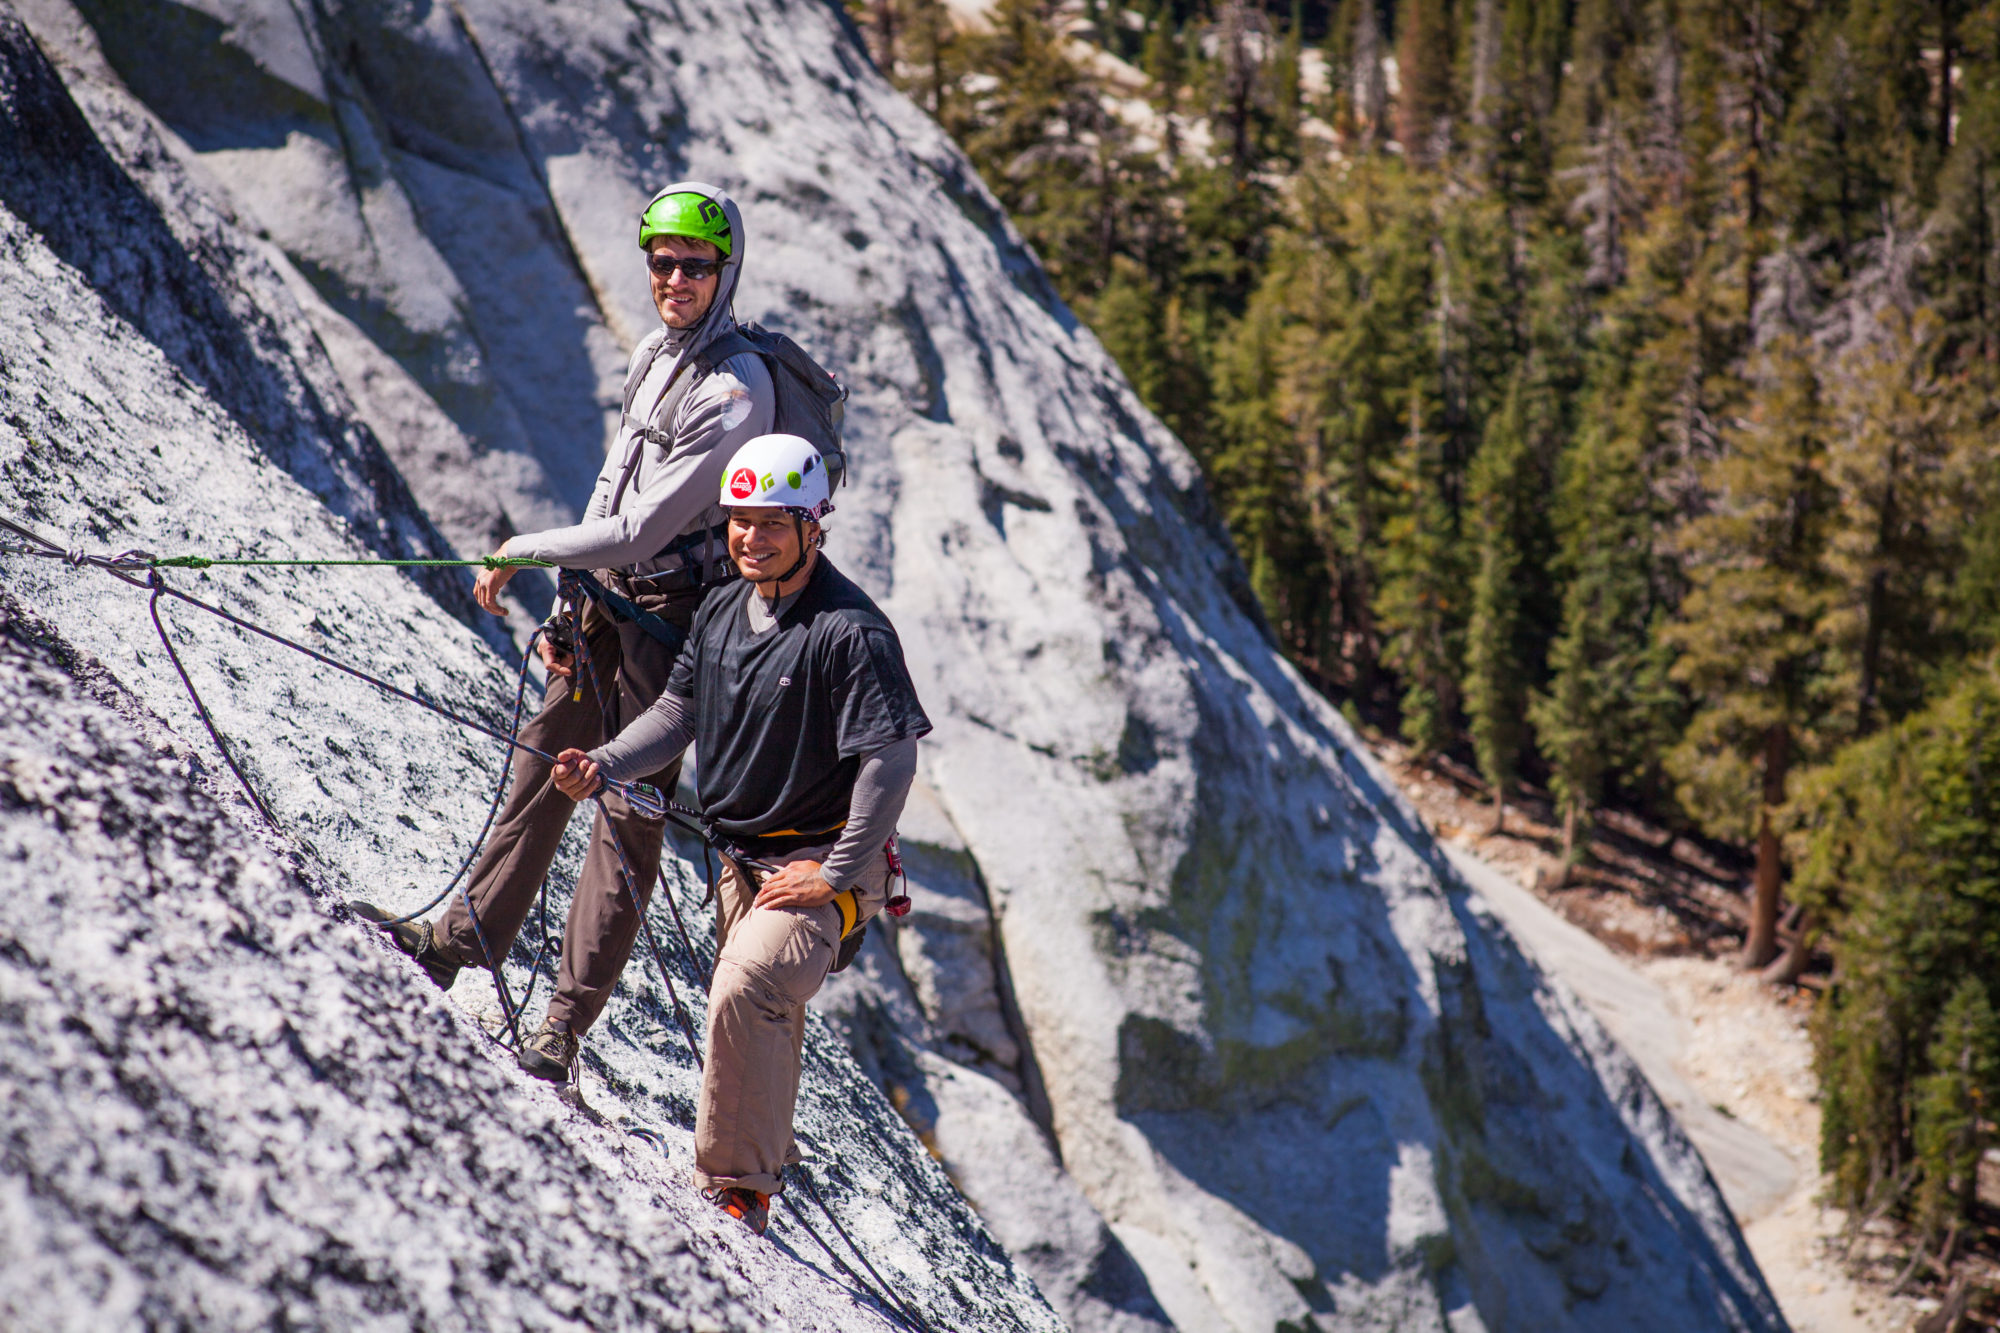 Climbers on the wall on Yosemite Trip in 2017